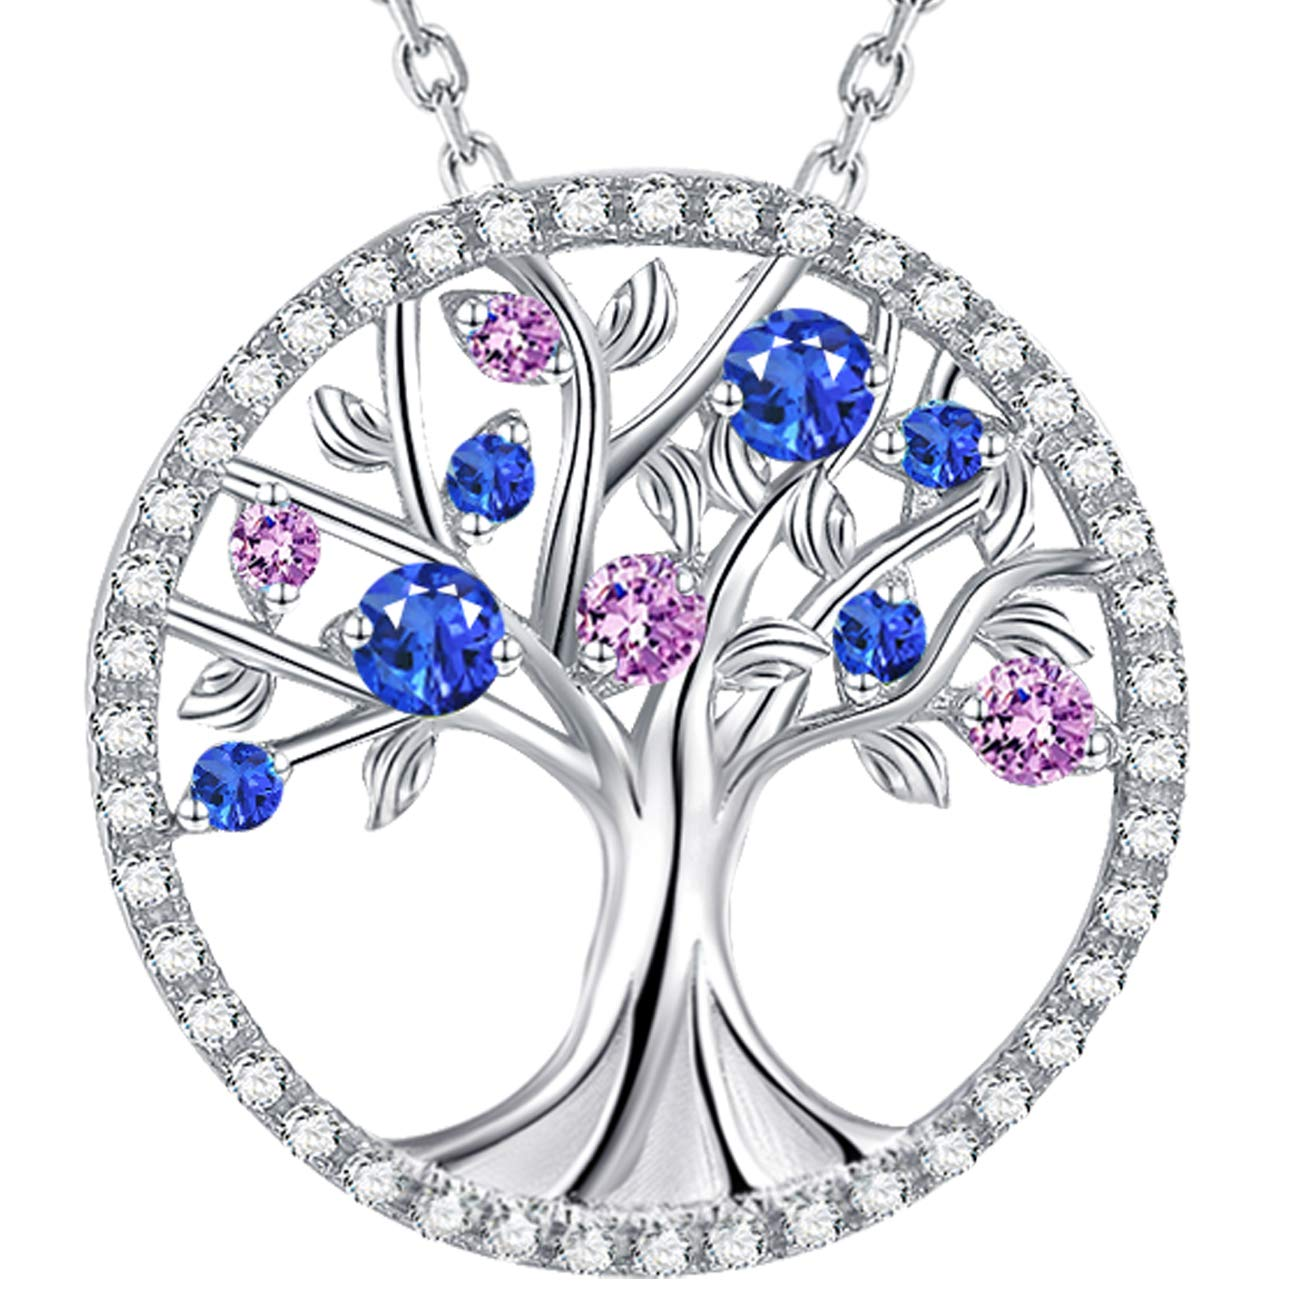 The Tree of Life September Birthstone Blue Sapphire and Pink Tourmaline Necklace Birthday Gift for Her Sterling Silver Fine Jewelry for Wife Lady Family